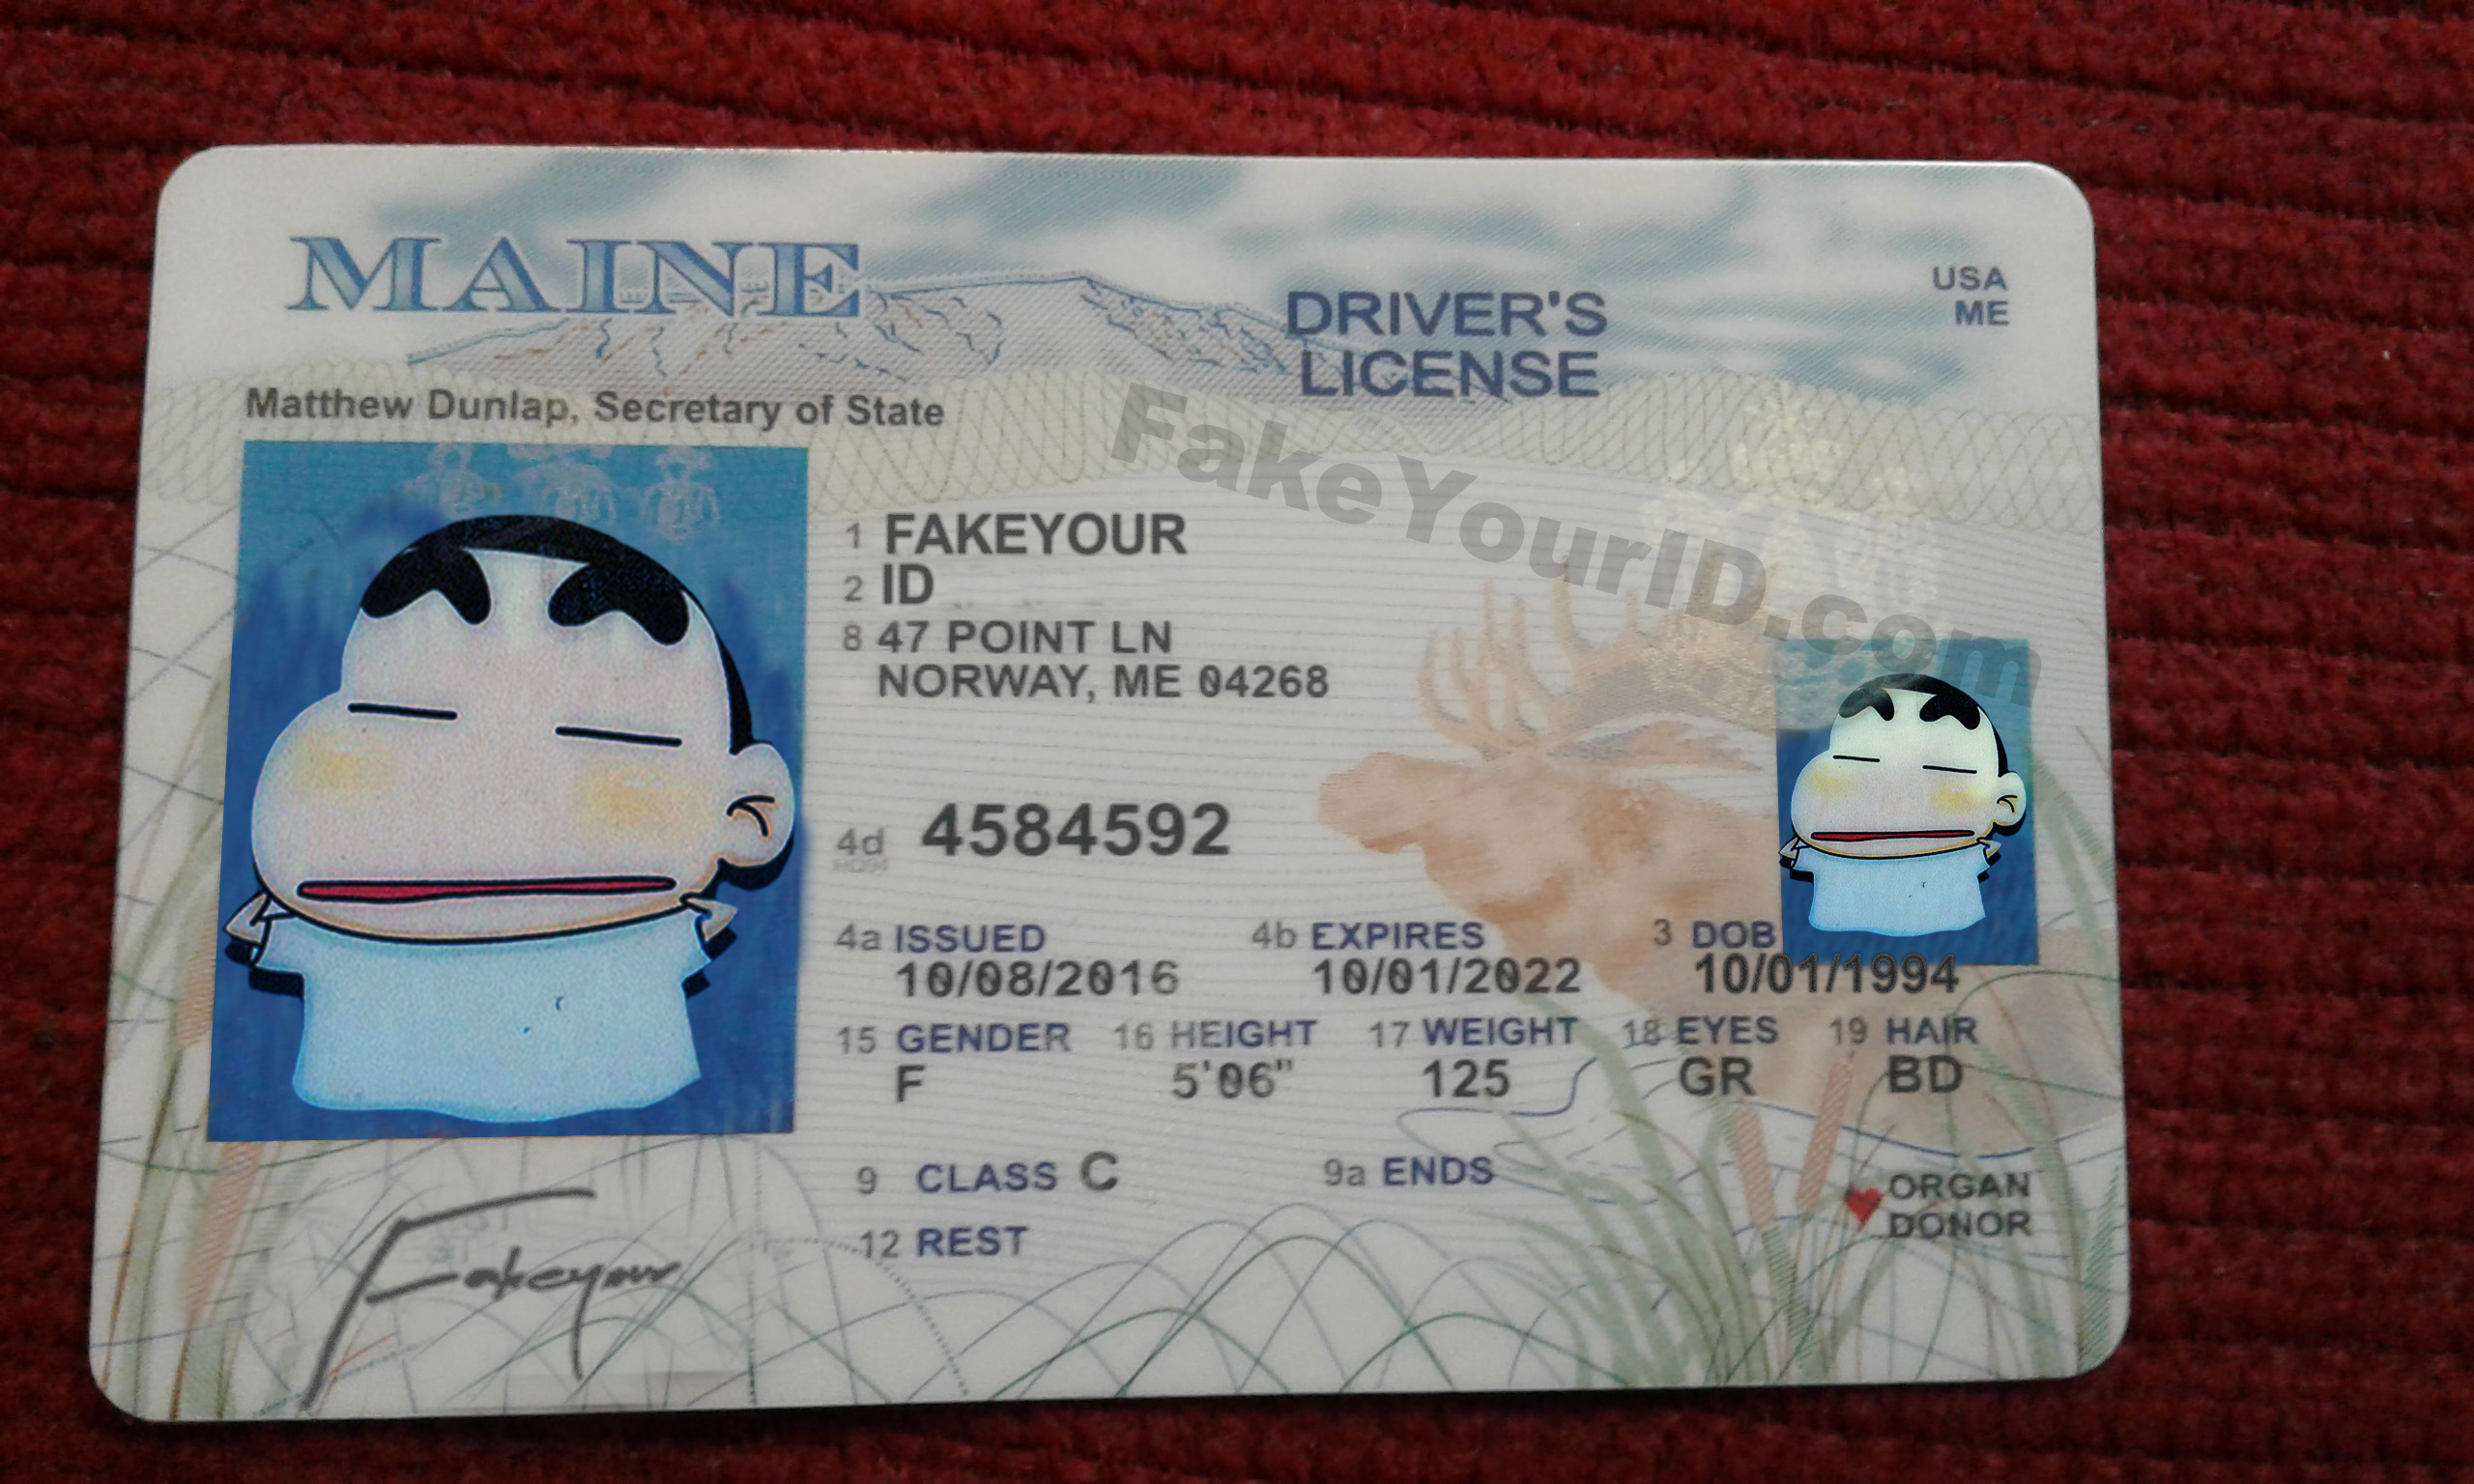 Fake Maine Id Premium Scannable - Make Buy Ids We